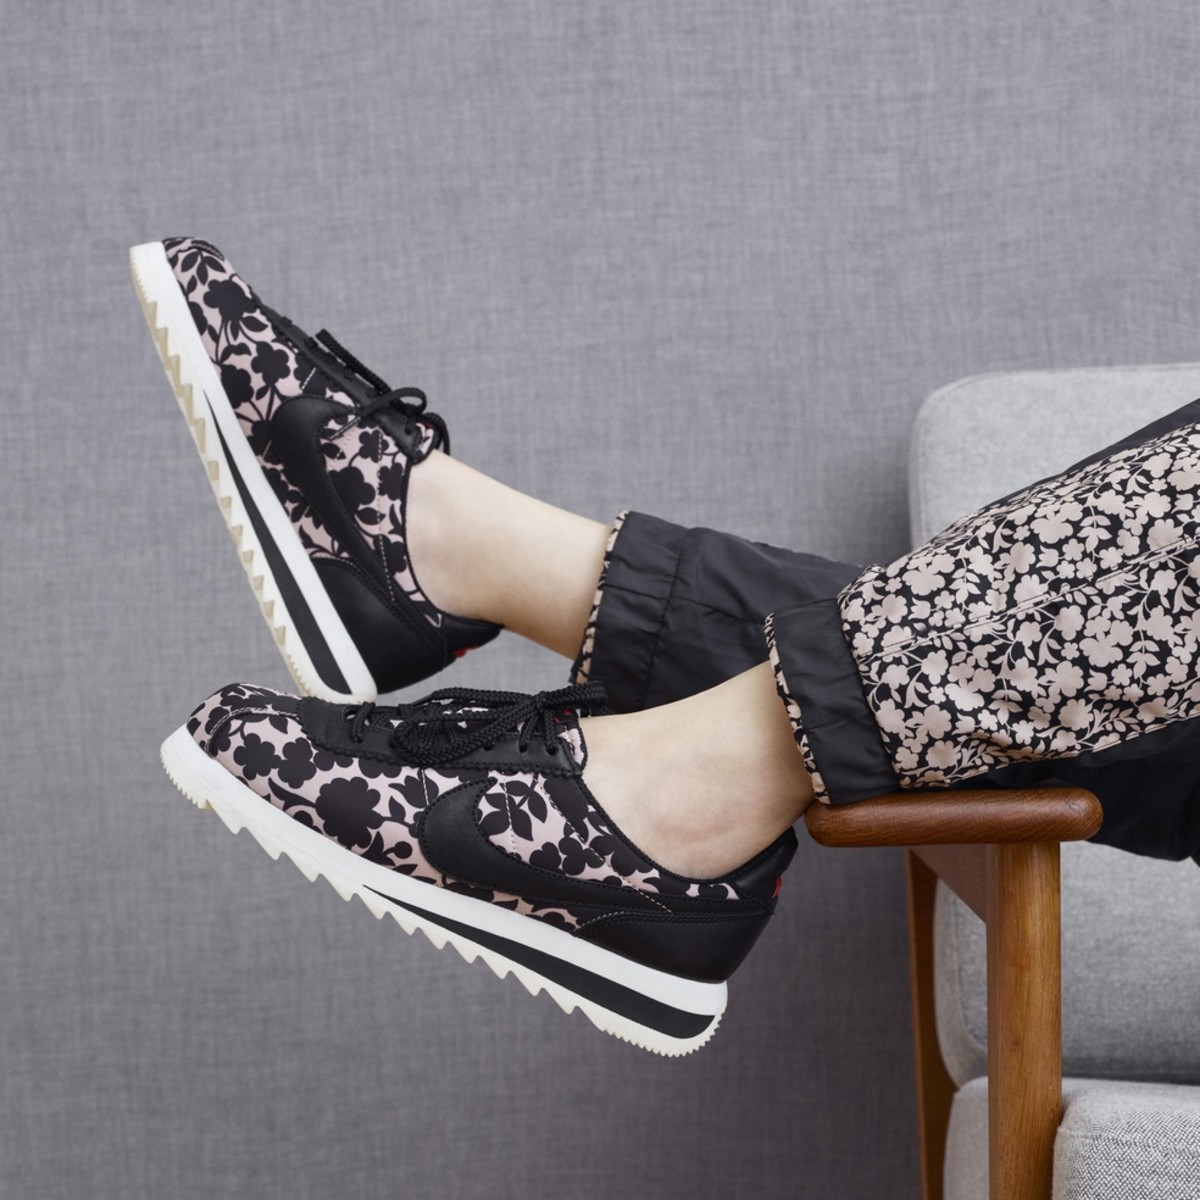 liberty-london-x-nike-floral-footwear-apparel-collection-06